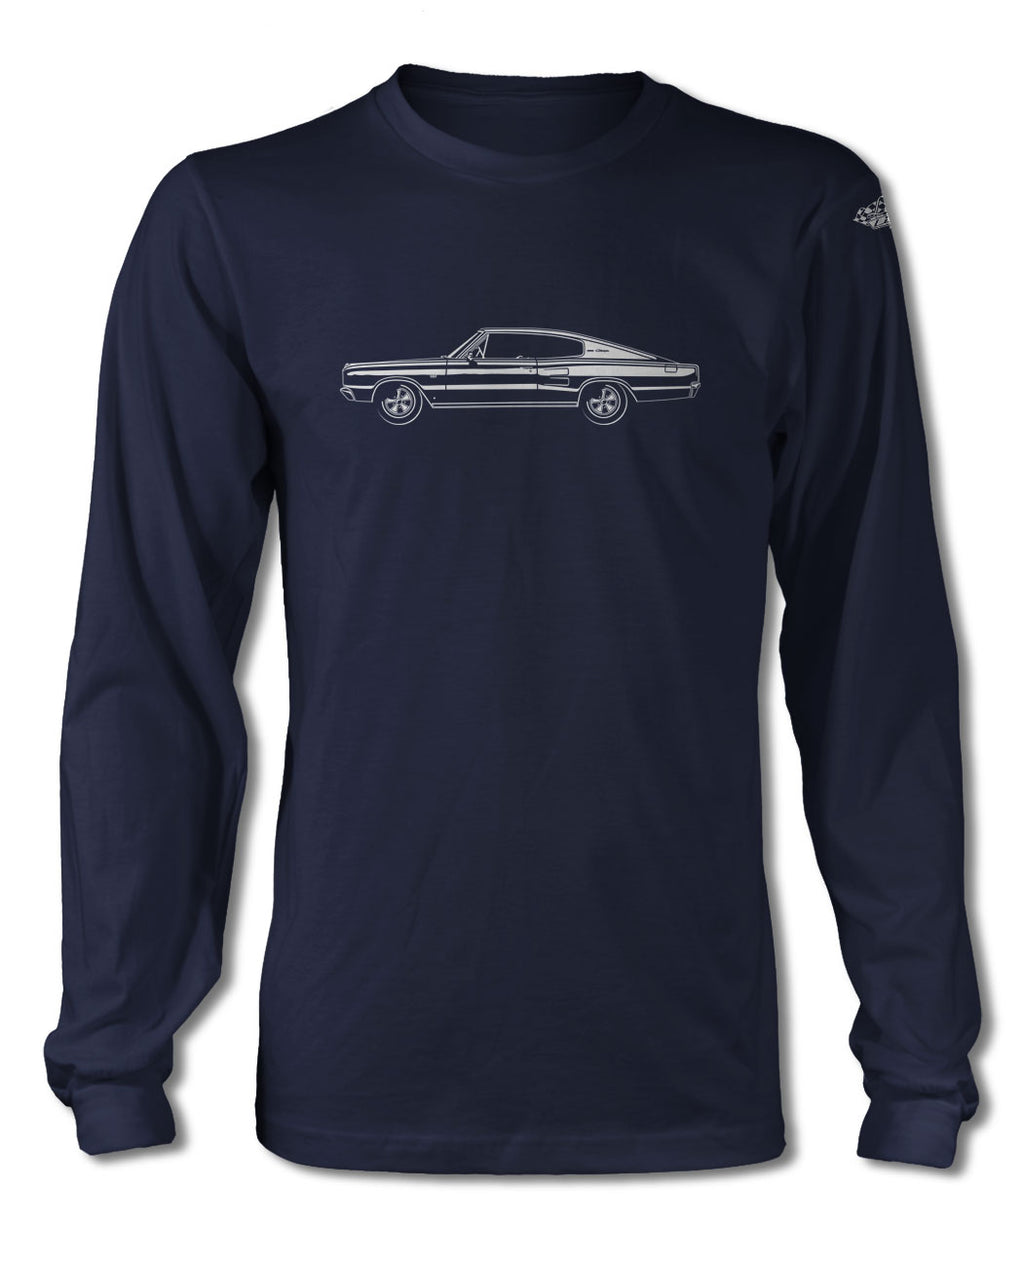 1967 Dodge Charger Coupe T-Shirt - Long Sleeves - Side View